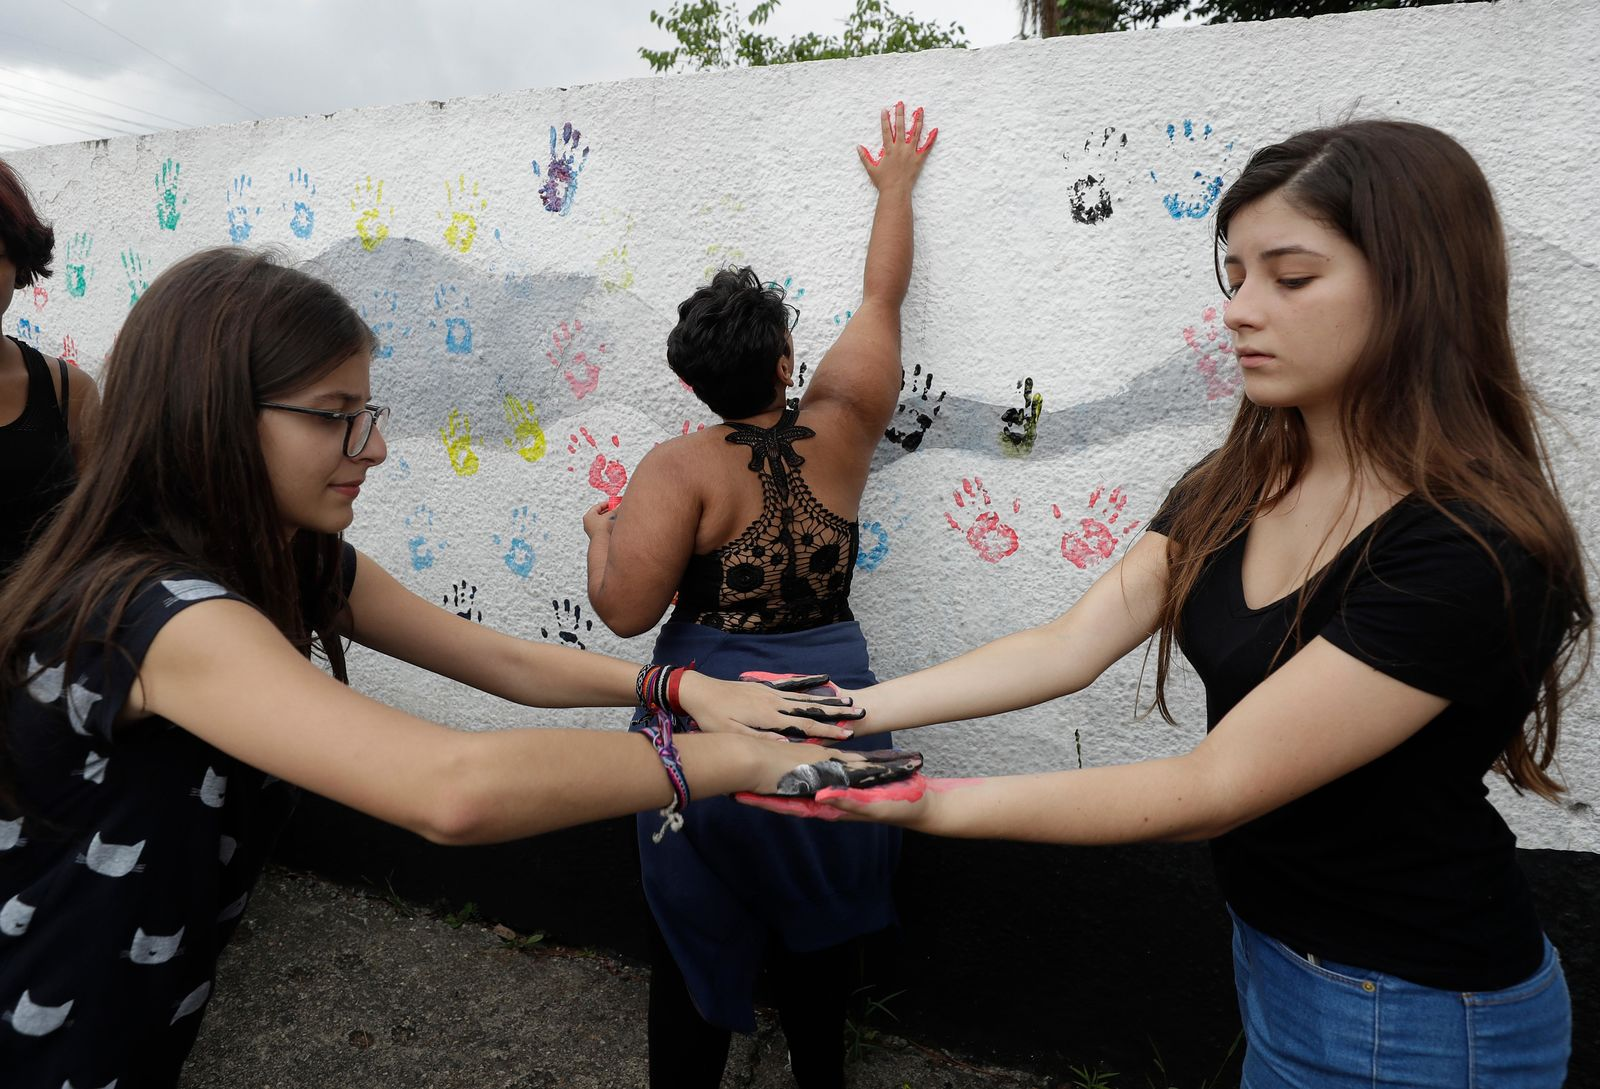 A student places her handprints on a wall at the Raul Brasil State School one day after a mass shooting, in Suzano, Brazil, Thursday, March 14, 2019. (AP Photo/Andre Penner)